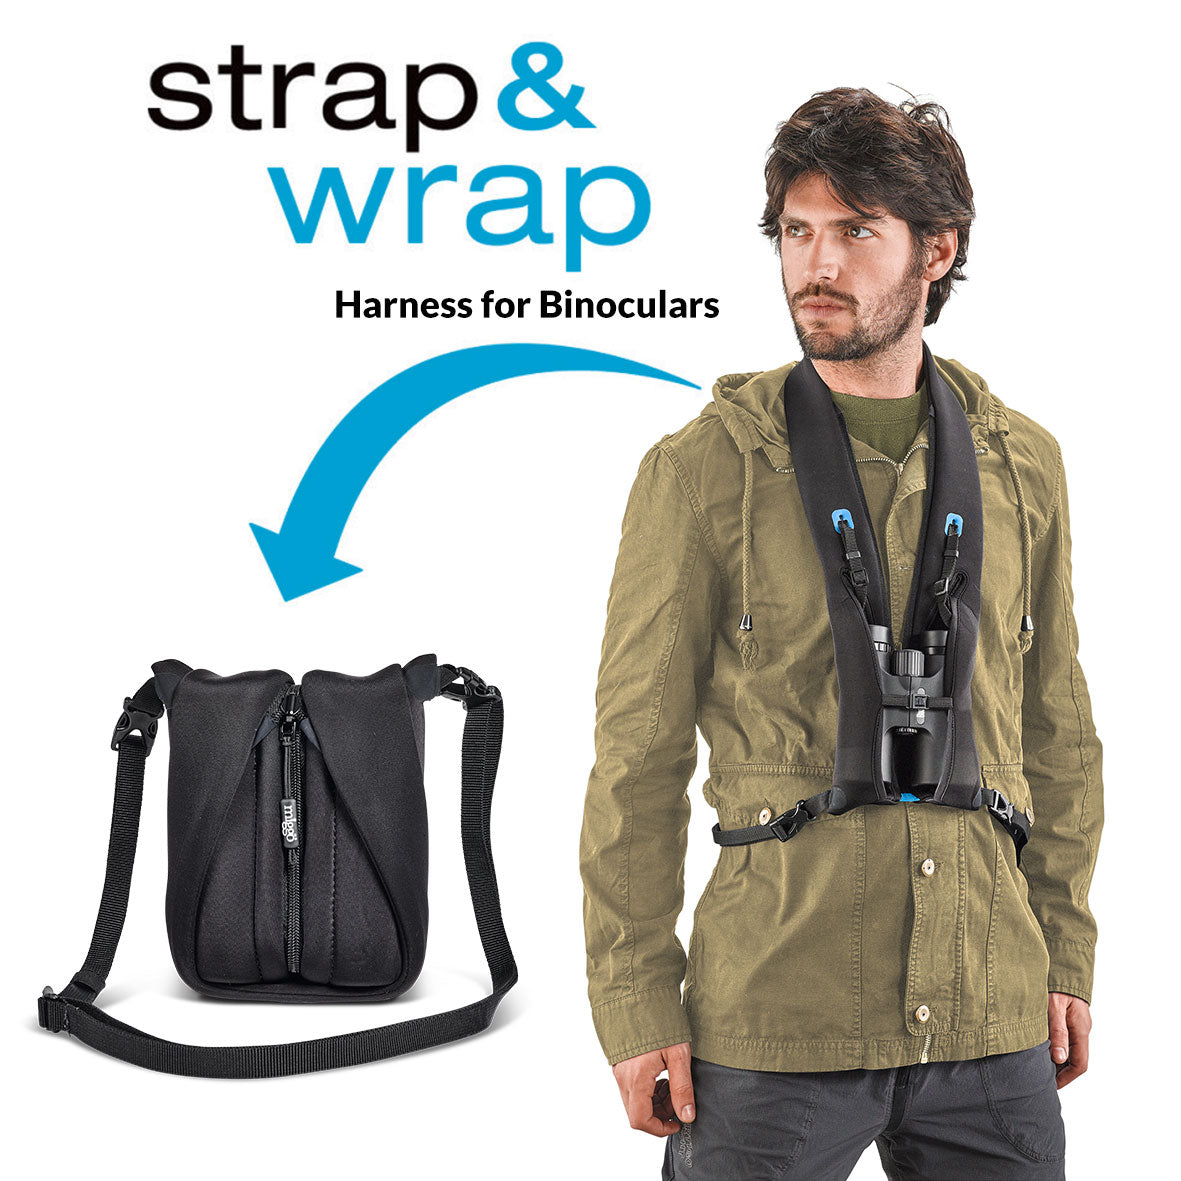 miggo-strap-_and_wrap_binoucular-Harness_MAIN